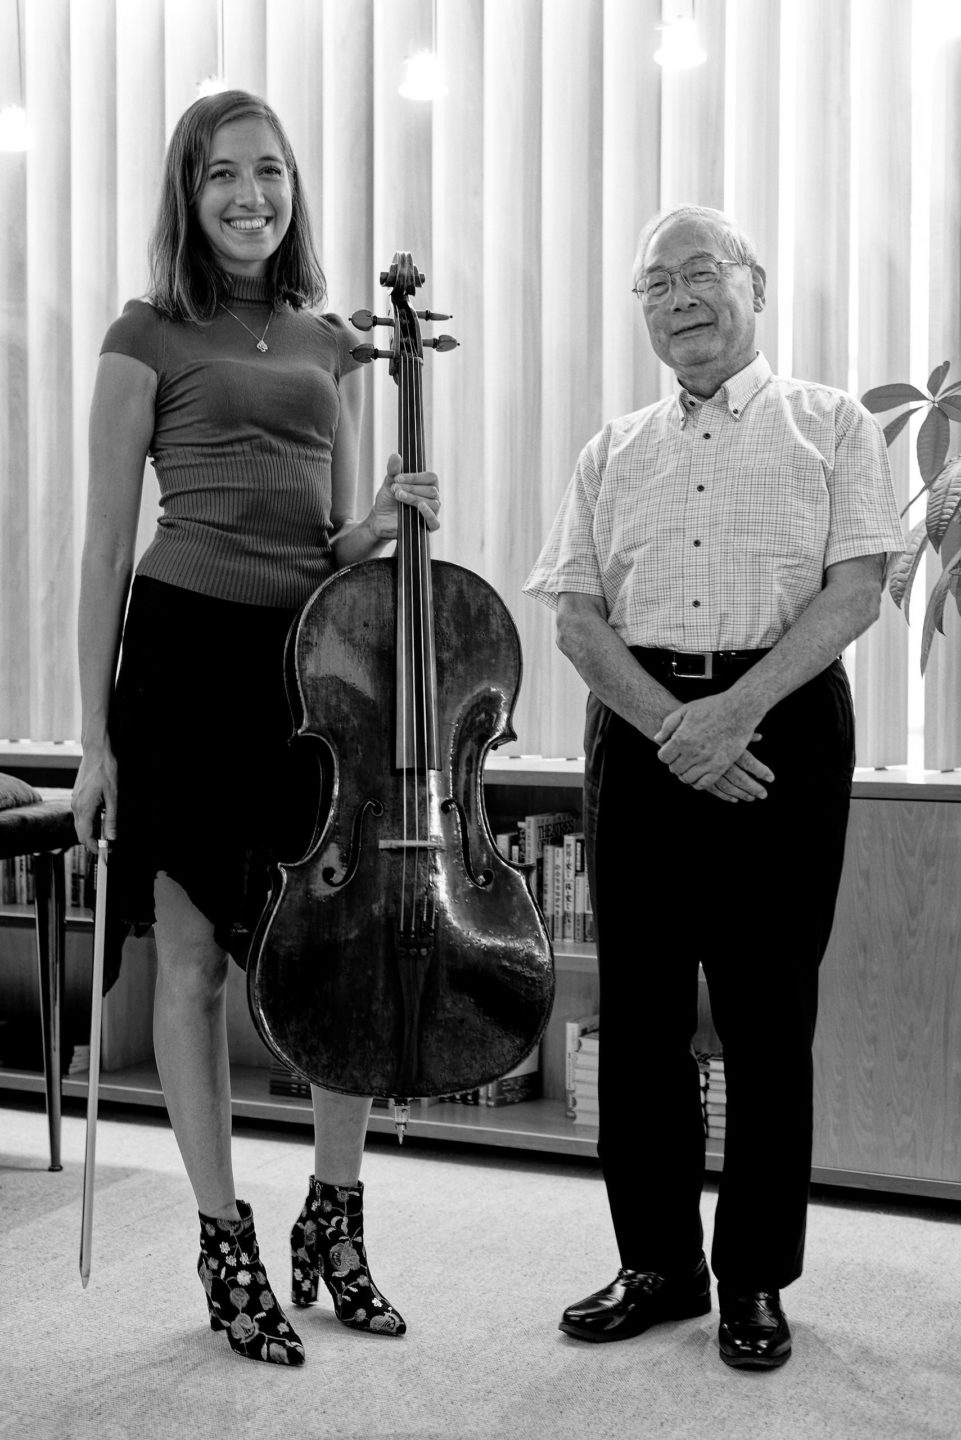 Camille Thomas in Tokyo with her Stradivarius Cello aside Mr Kano, director of the Nippon Foundation for Music, by Franck Socha